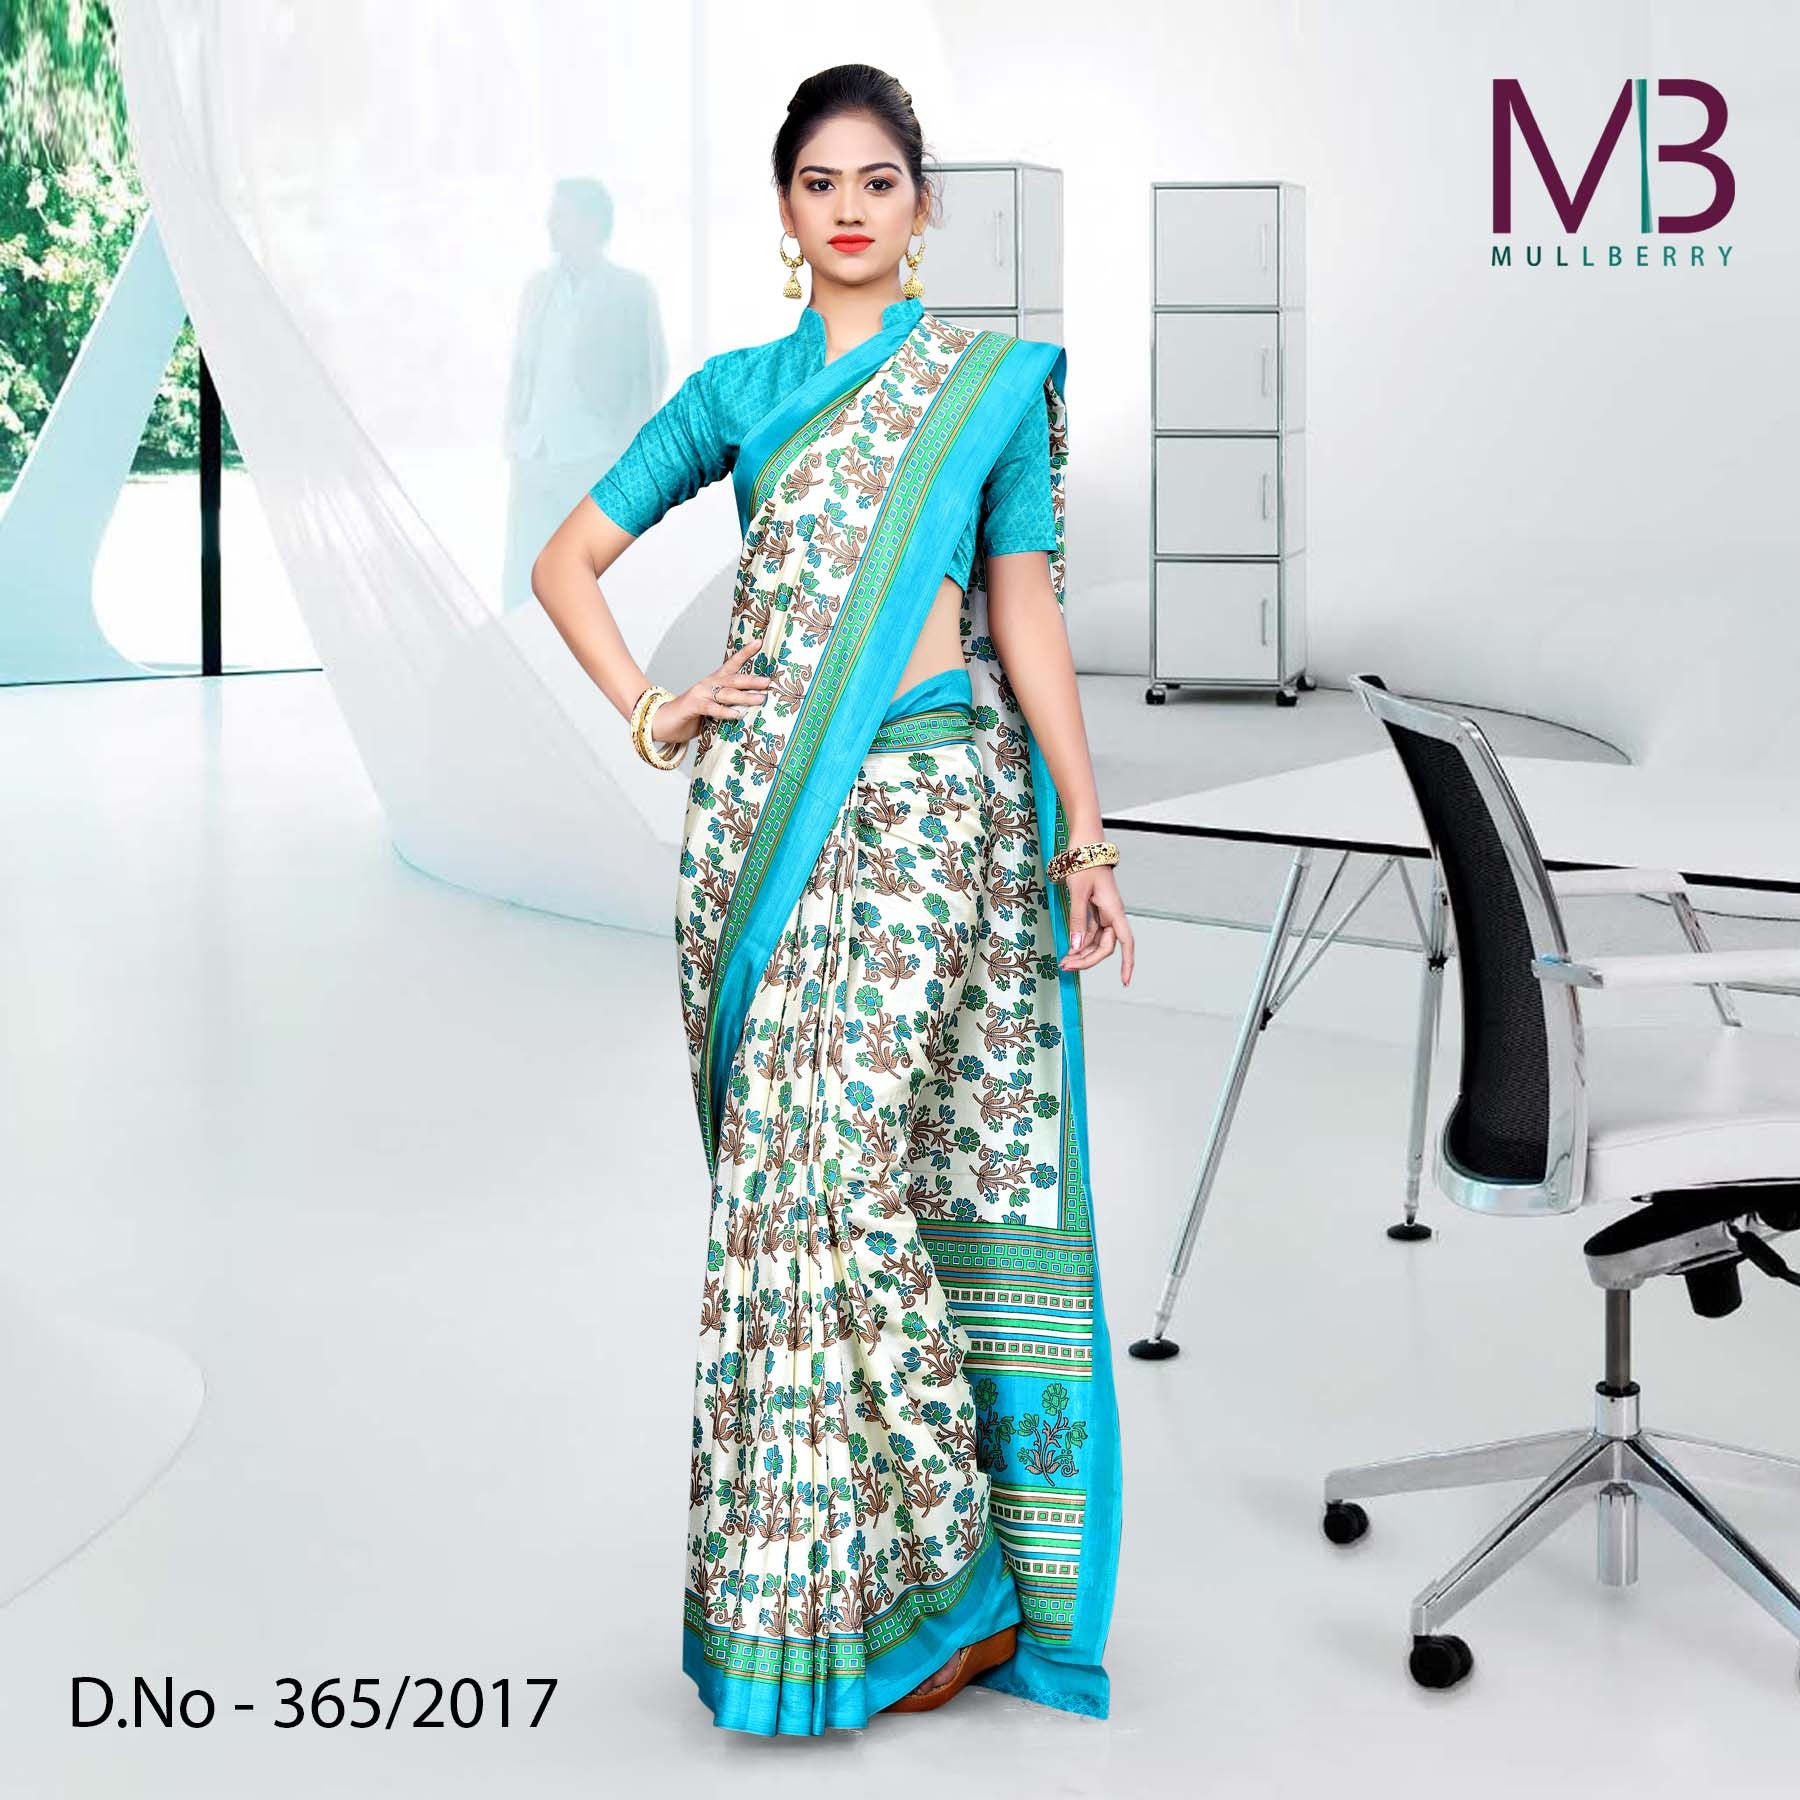 Cream with sky blue border Mulberry silk uniform saree